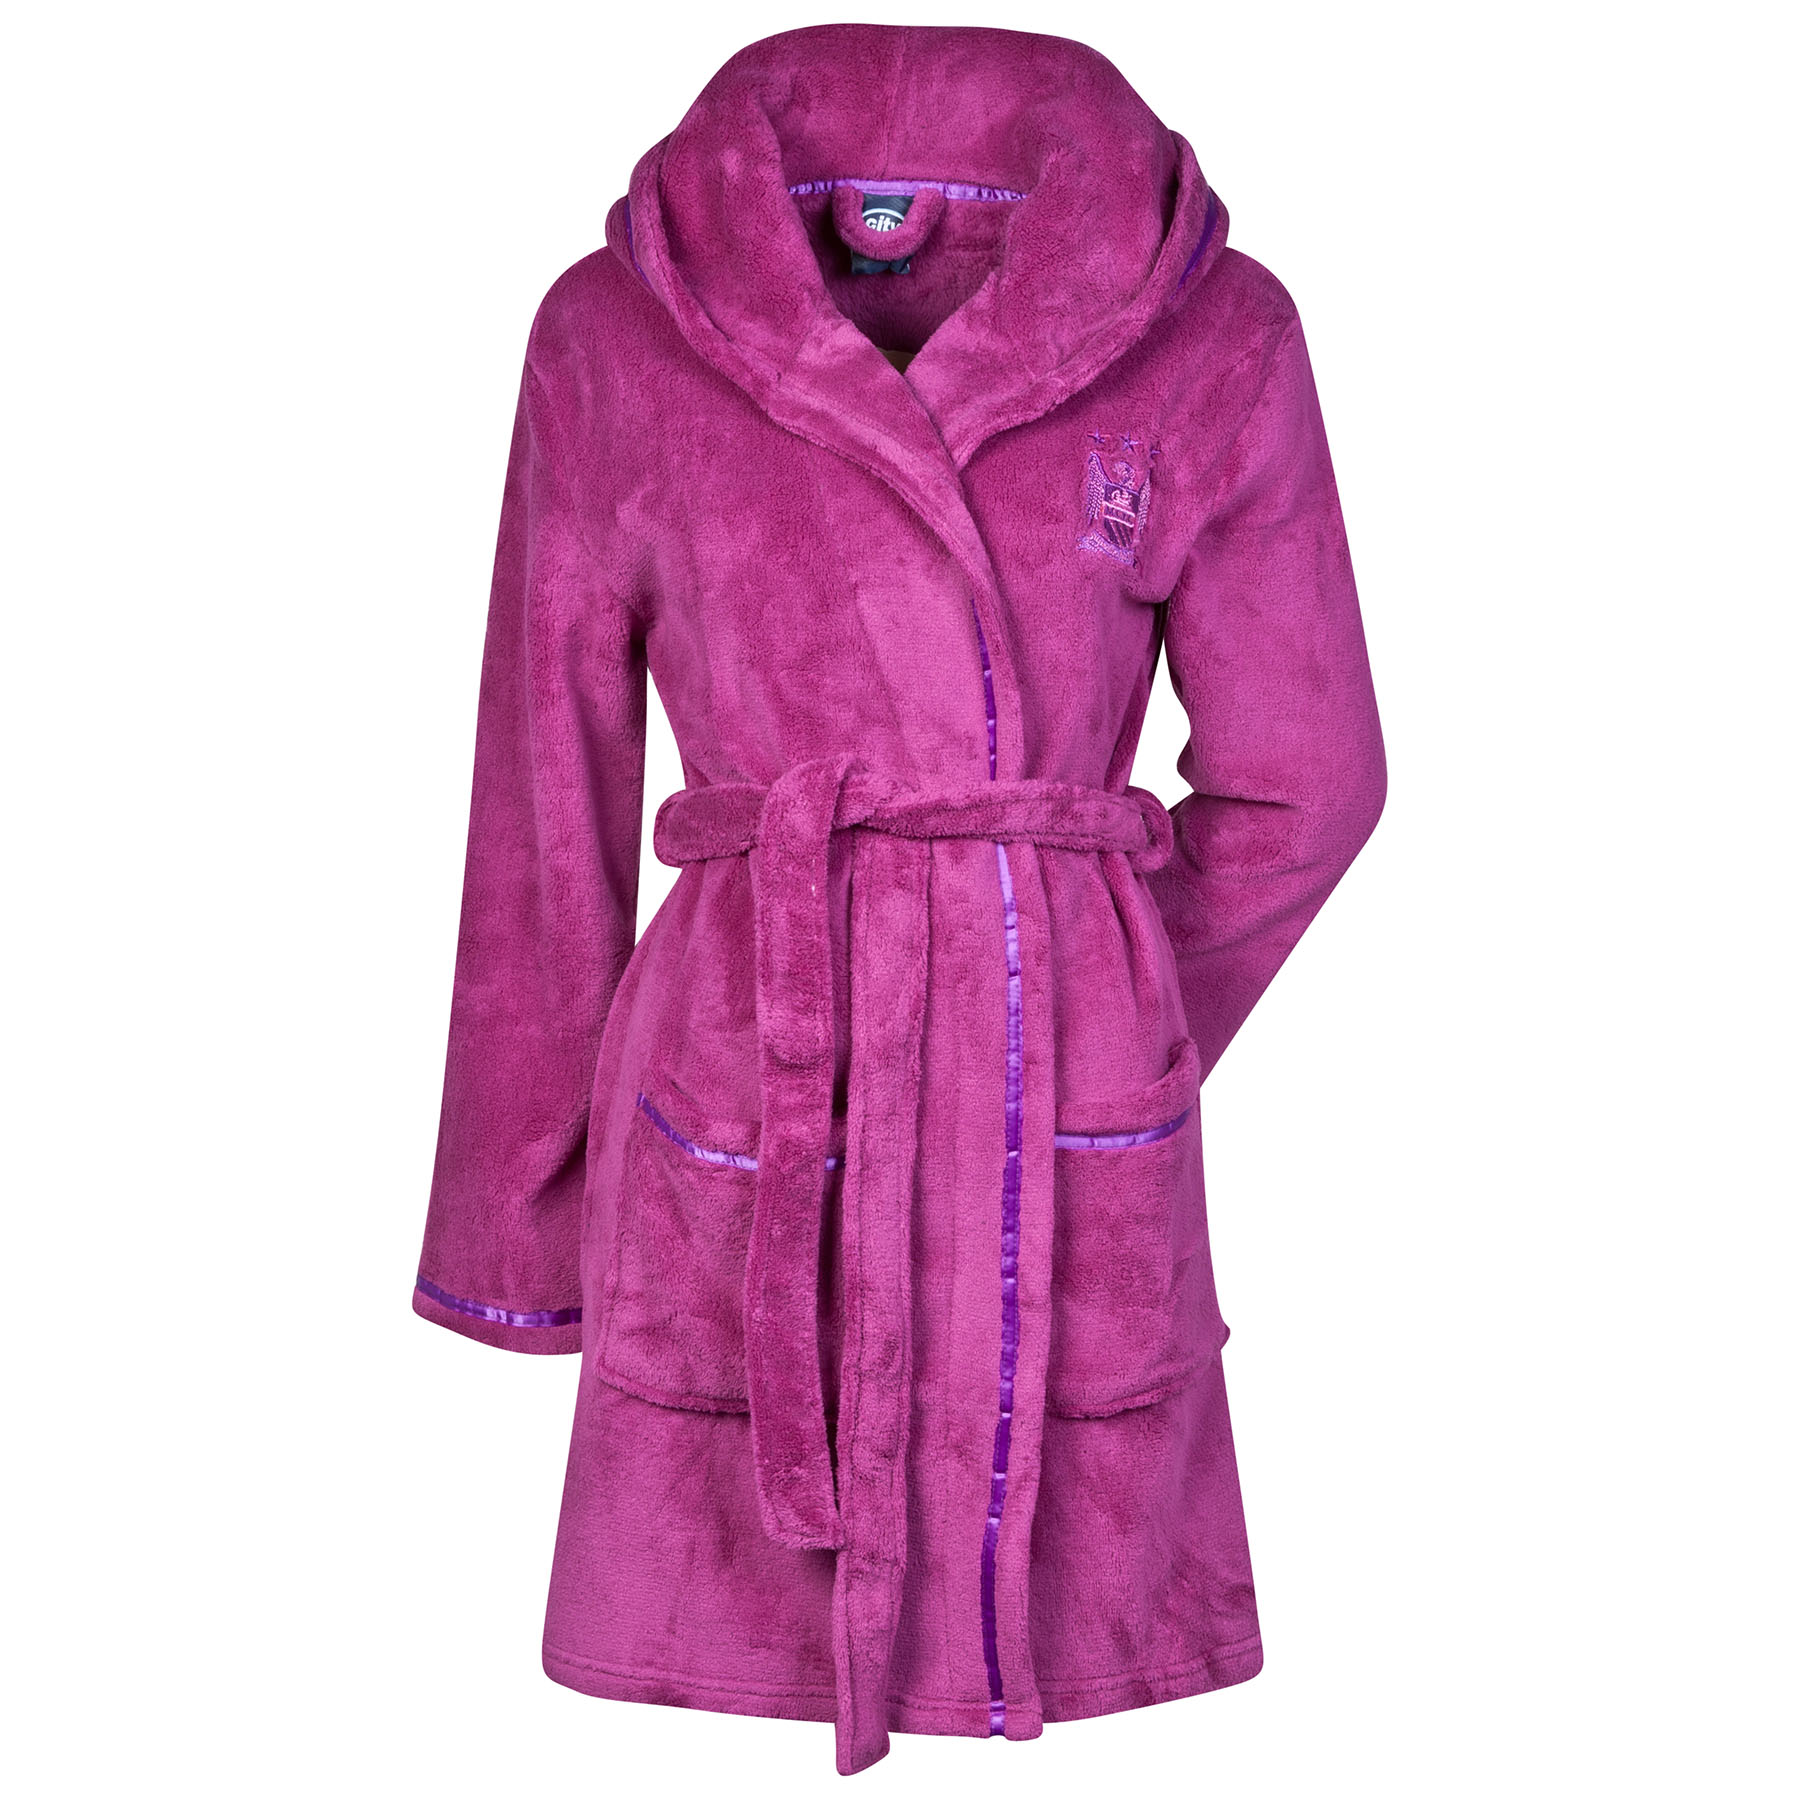 Manchester City Robe - Magenta Pink - Womens